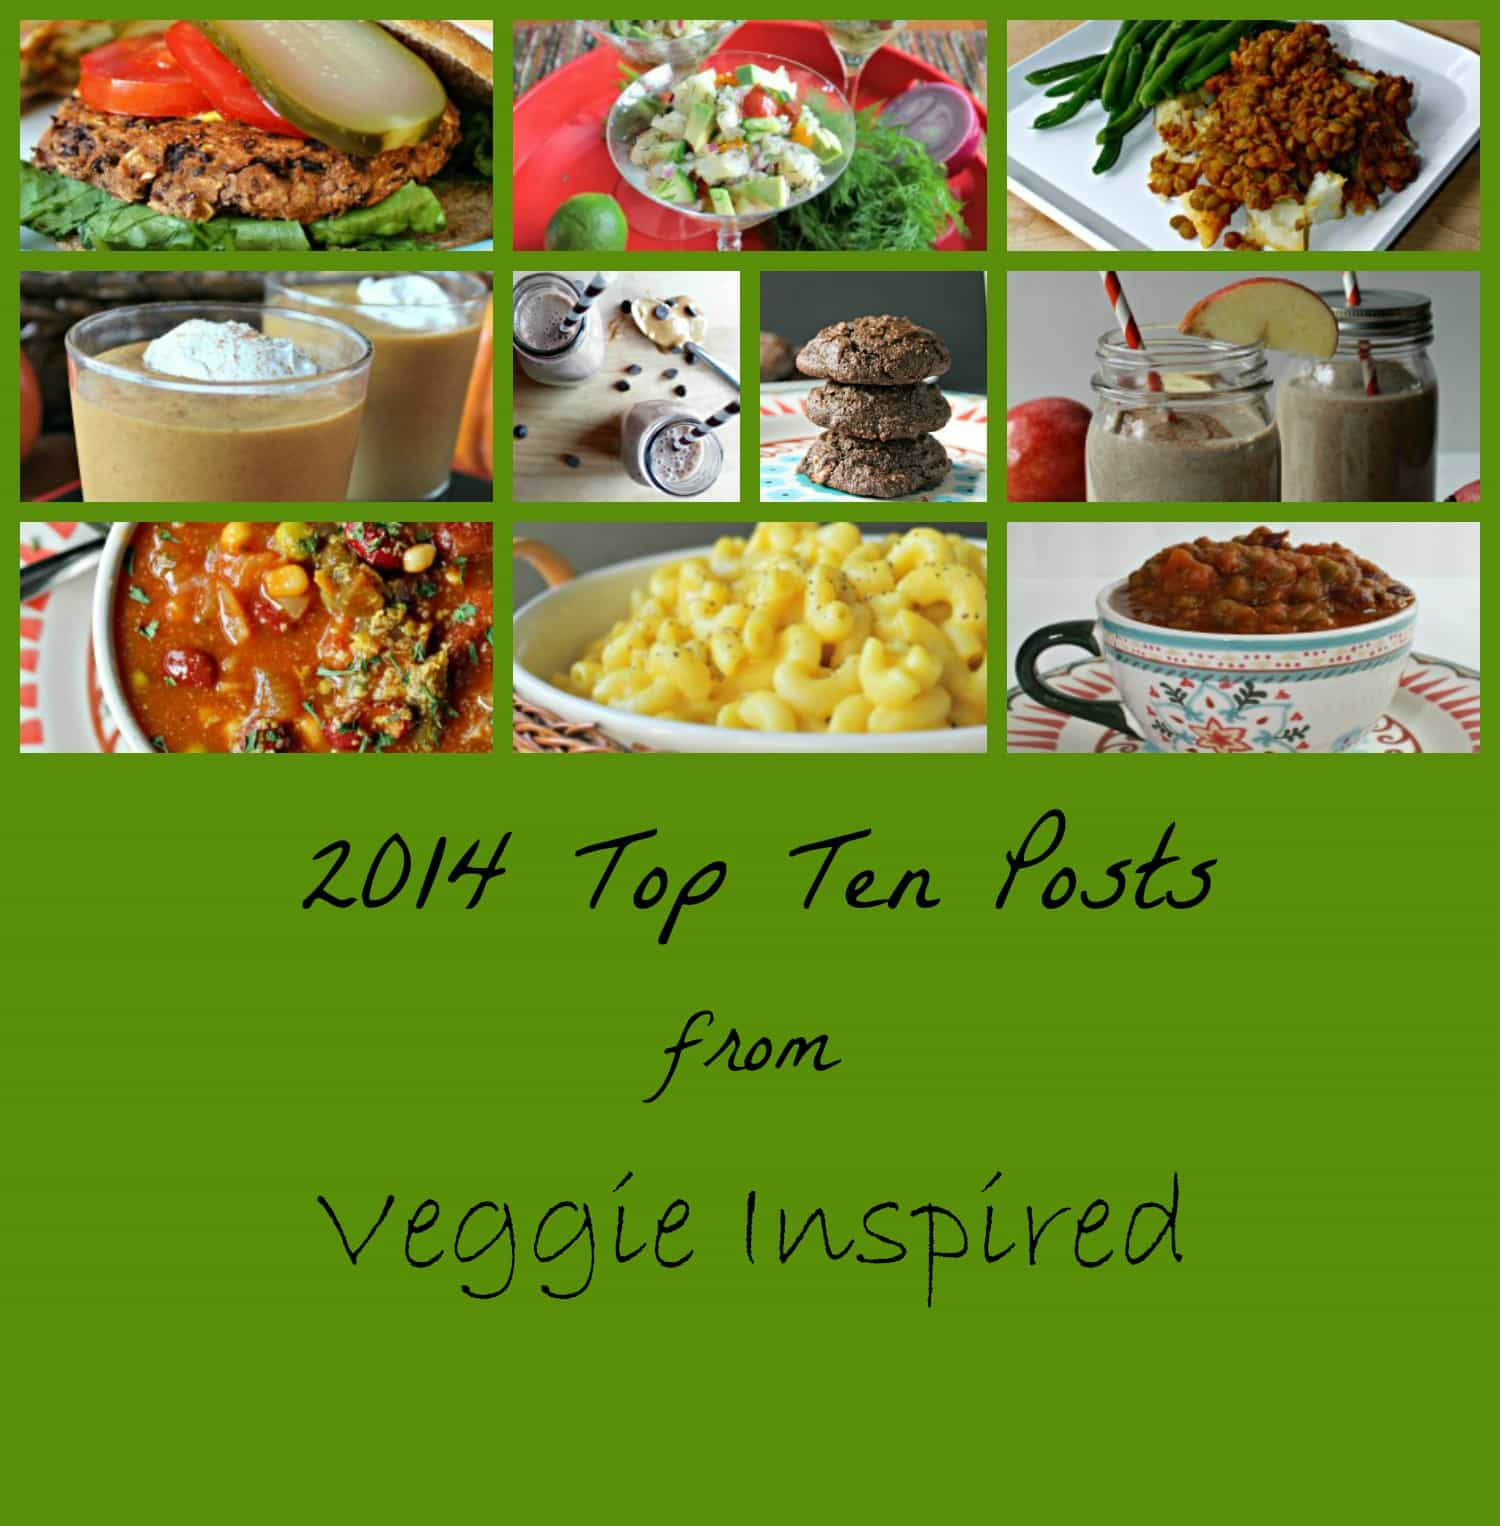 2014 Top Ten Posts from Veggie Inspired